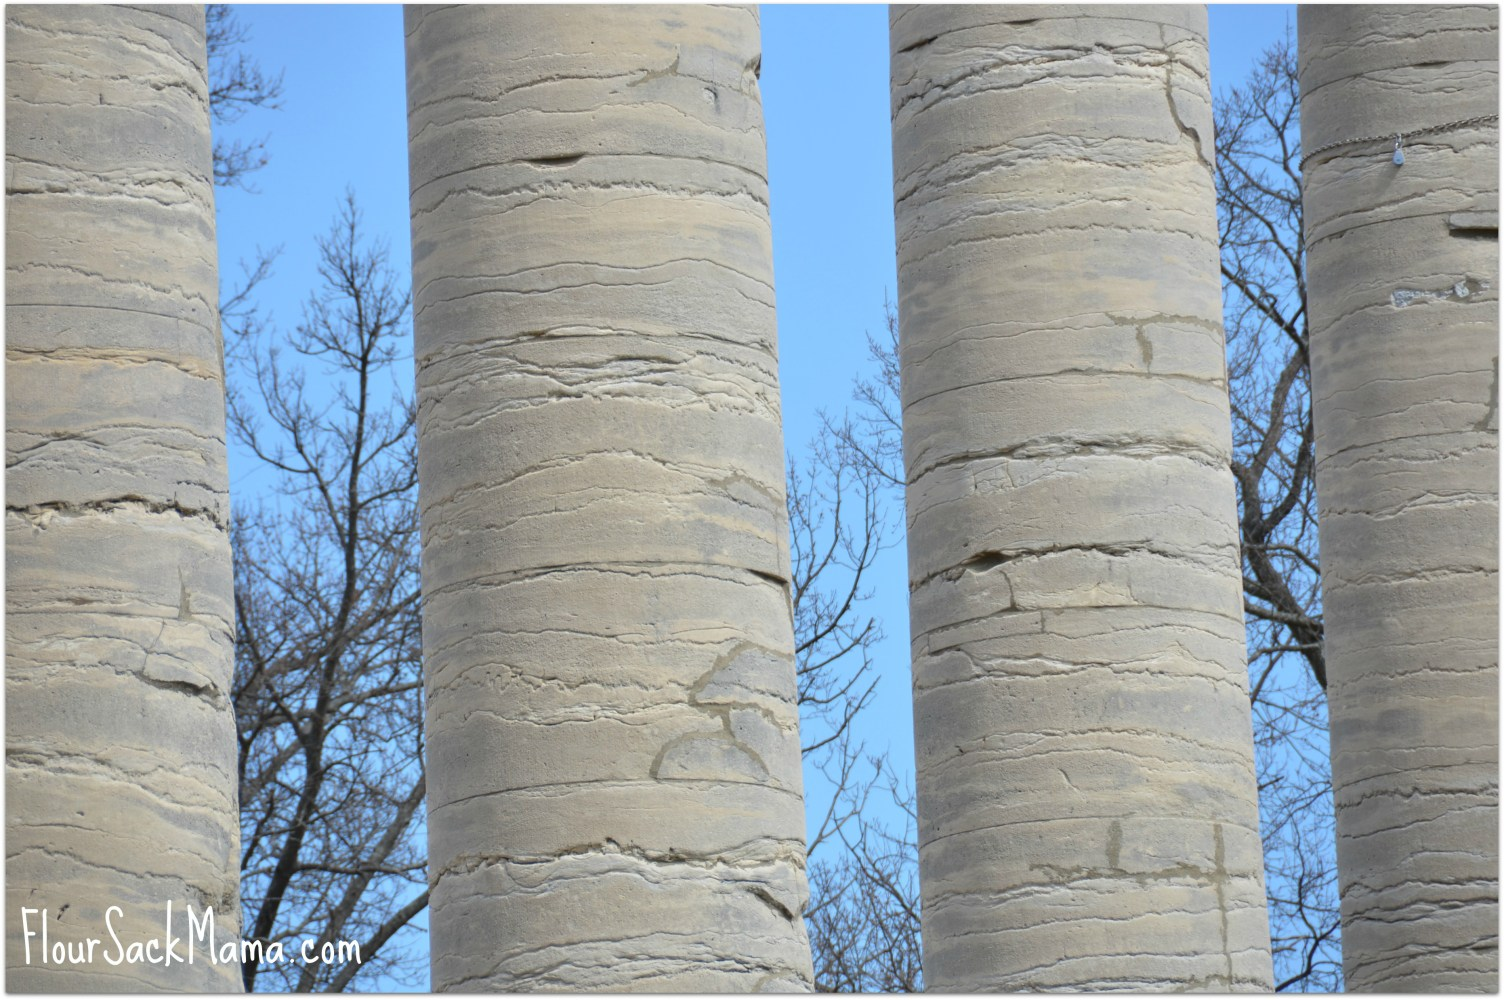 closeup of columns at University of Missouri